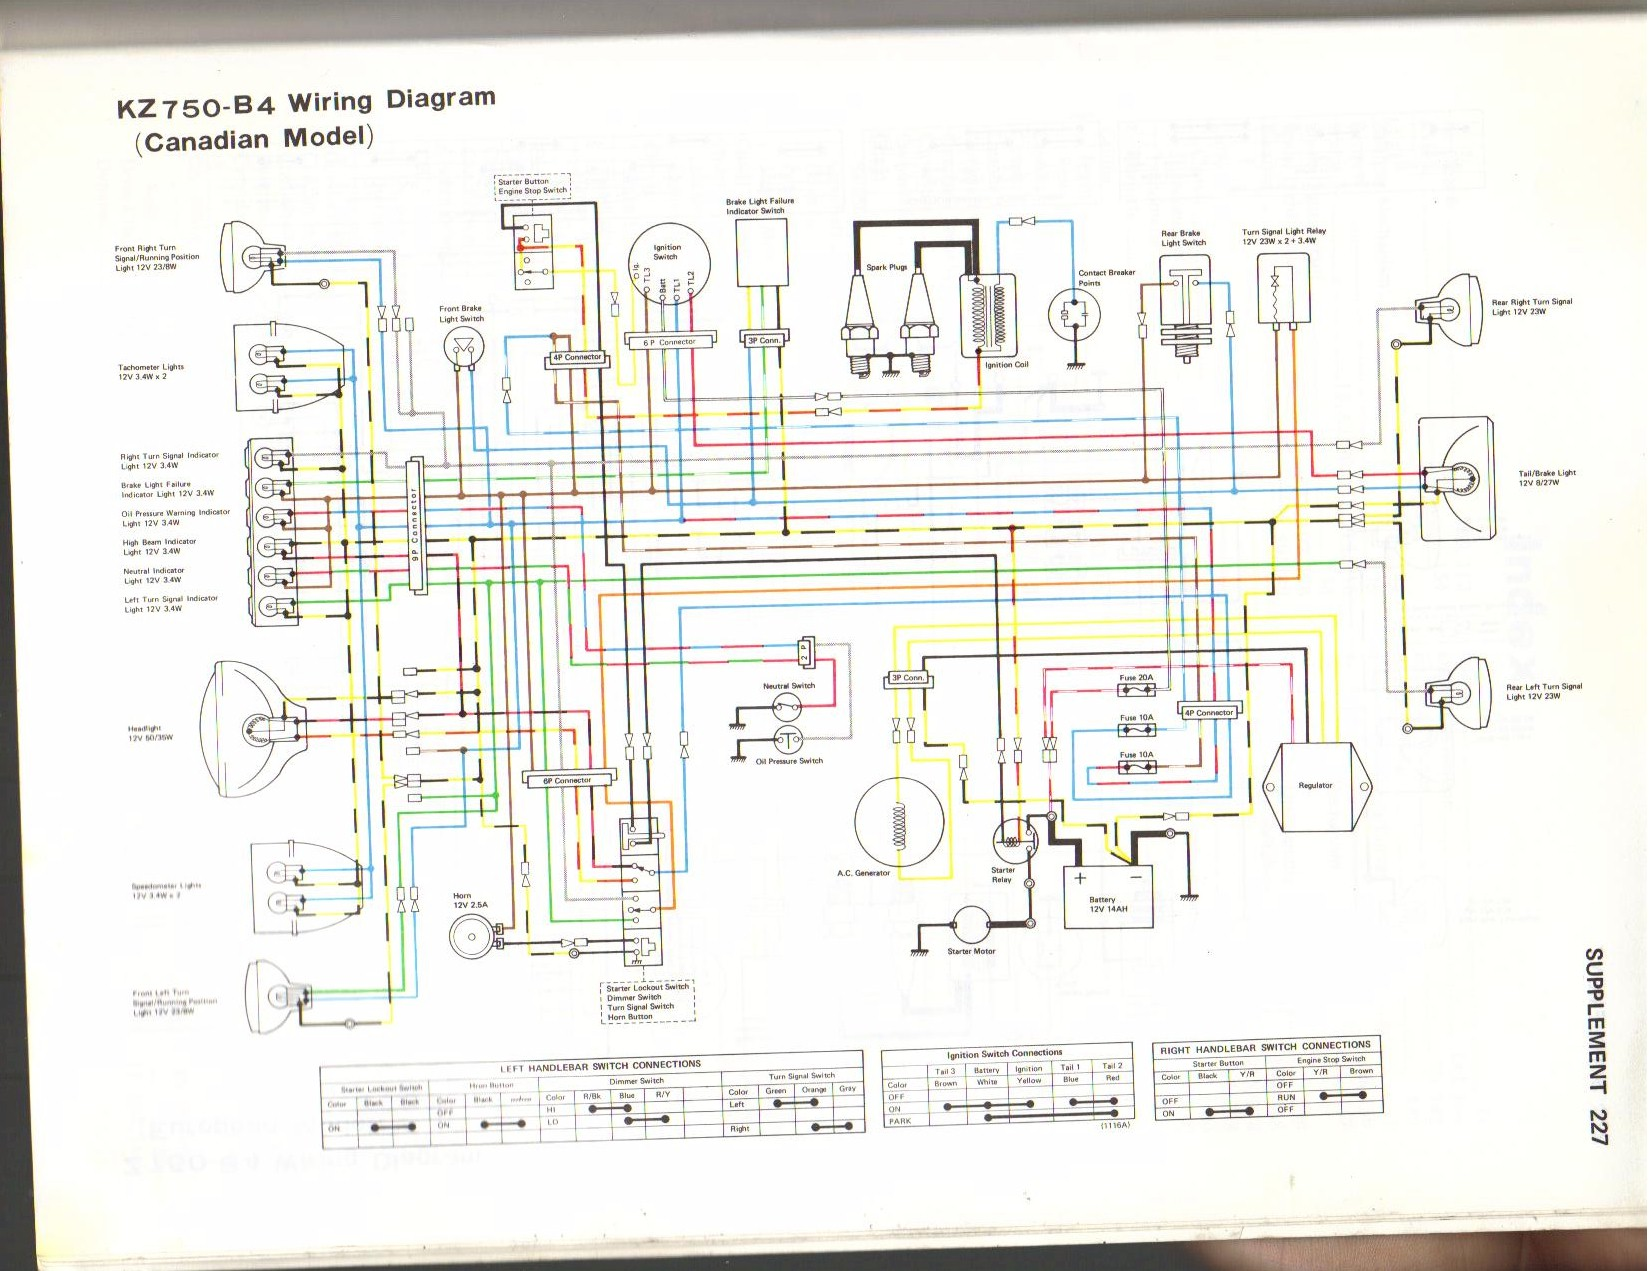 yamaha xs11 wiring diagram - wiring diagram page object-fix -  object-fix.granballodicomo.it  granballodicomo.it